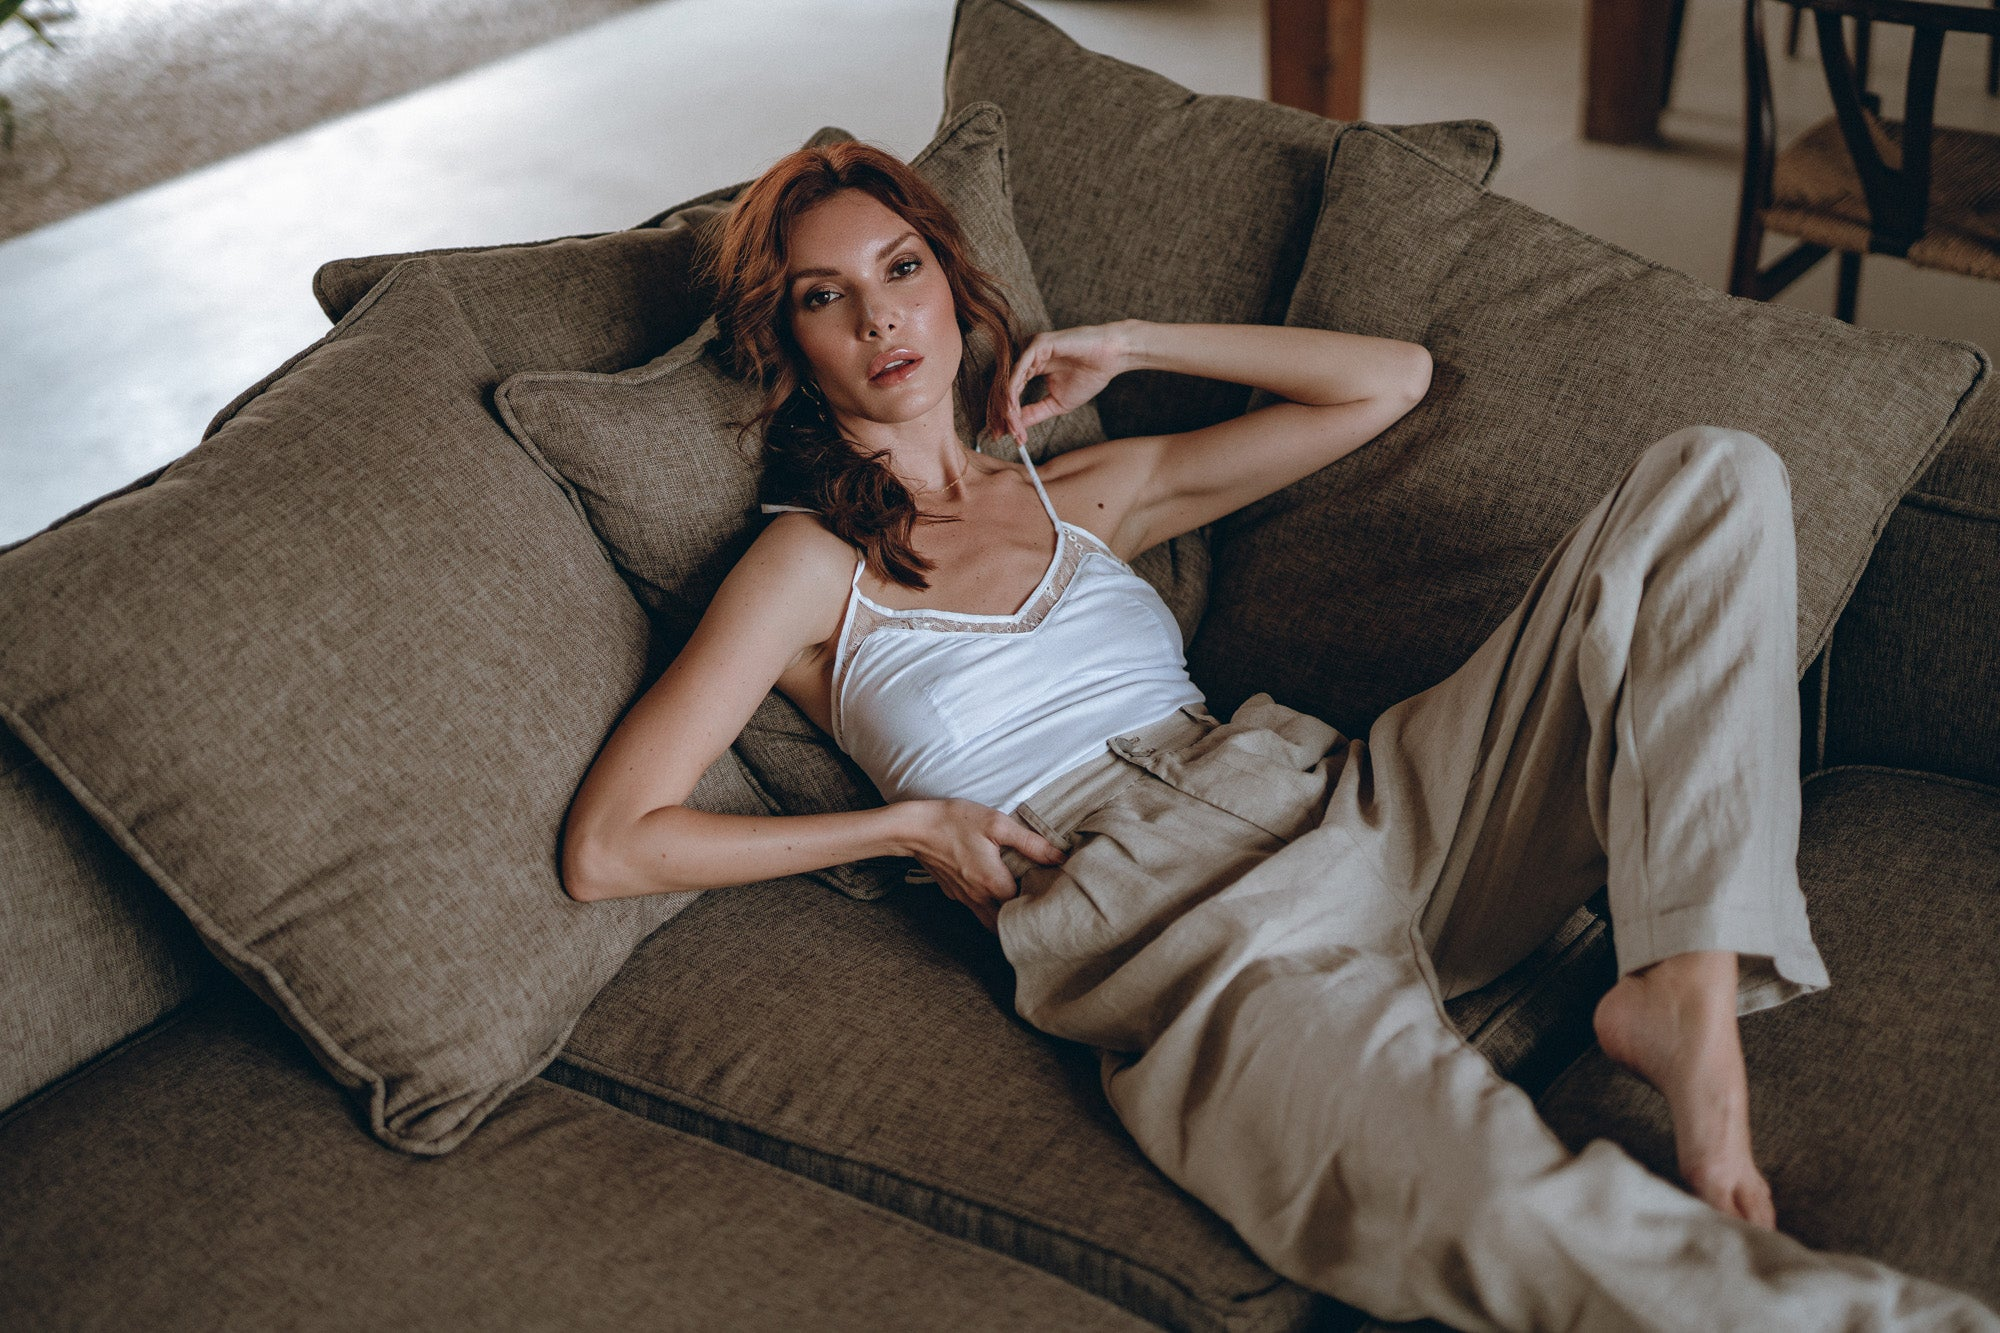 female model on a sofa is wearing grey linen pants and a white top